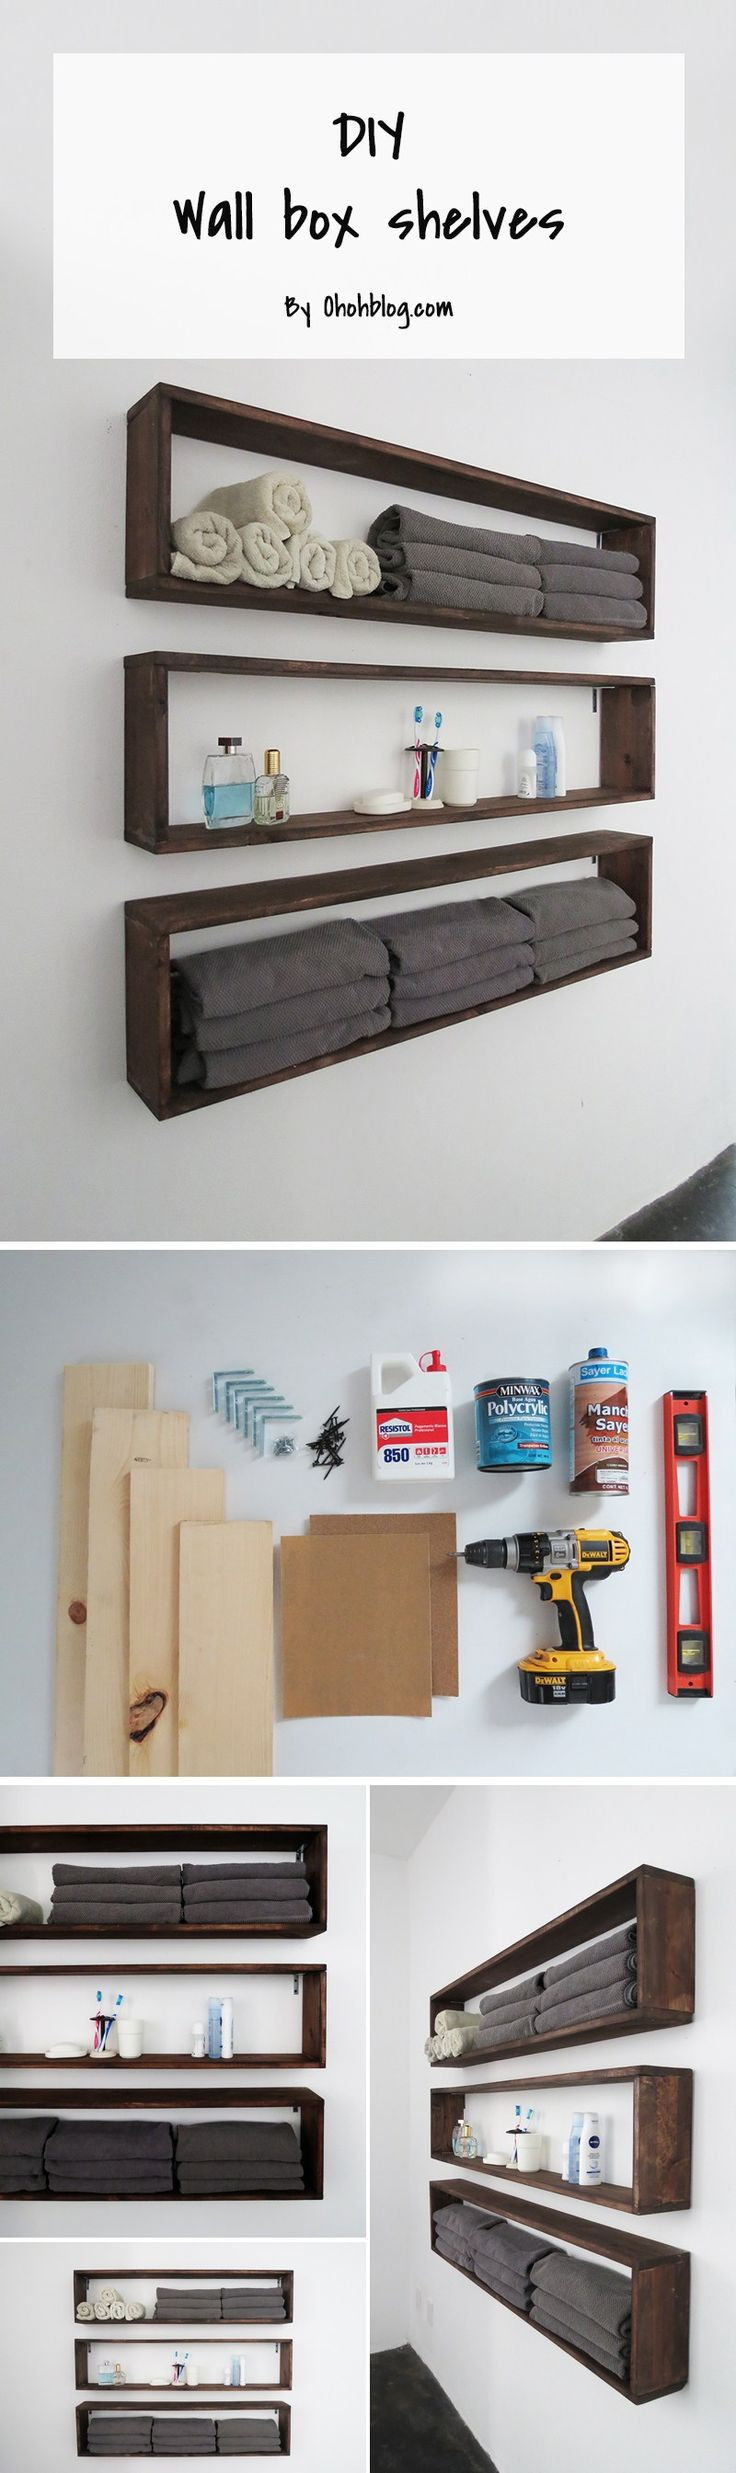 best 10+ wall boxes ideas on pinterest | shadow box shelves